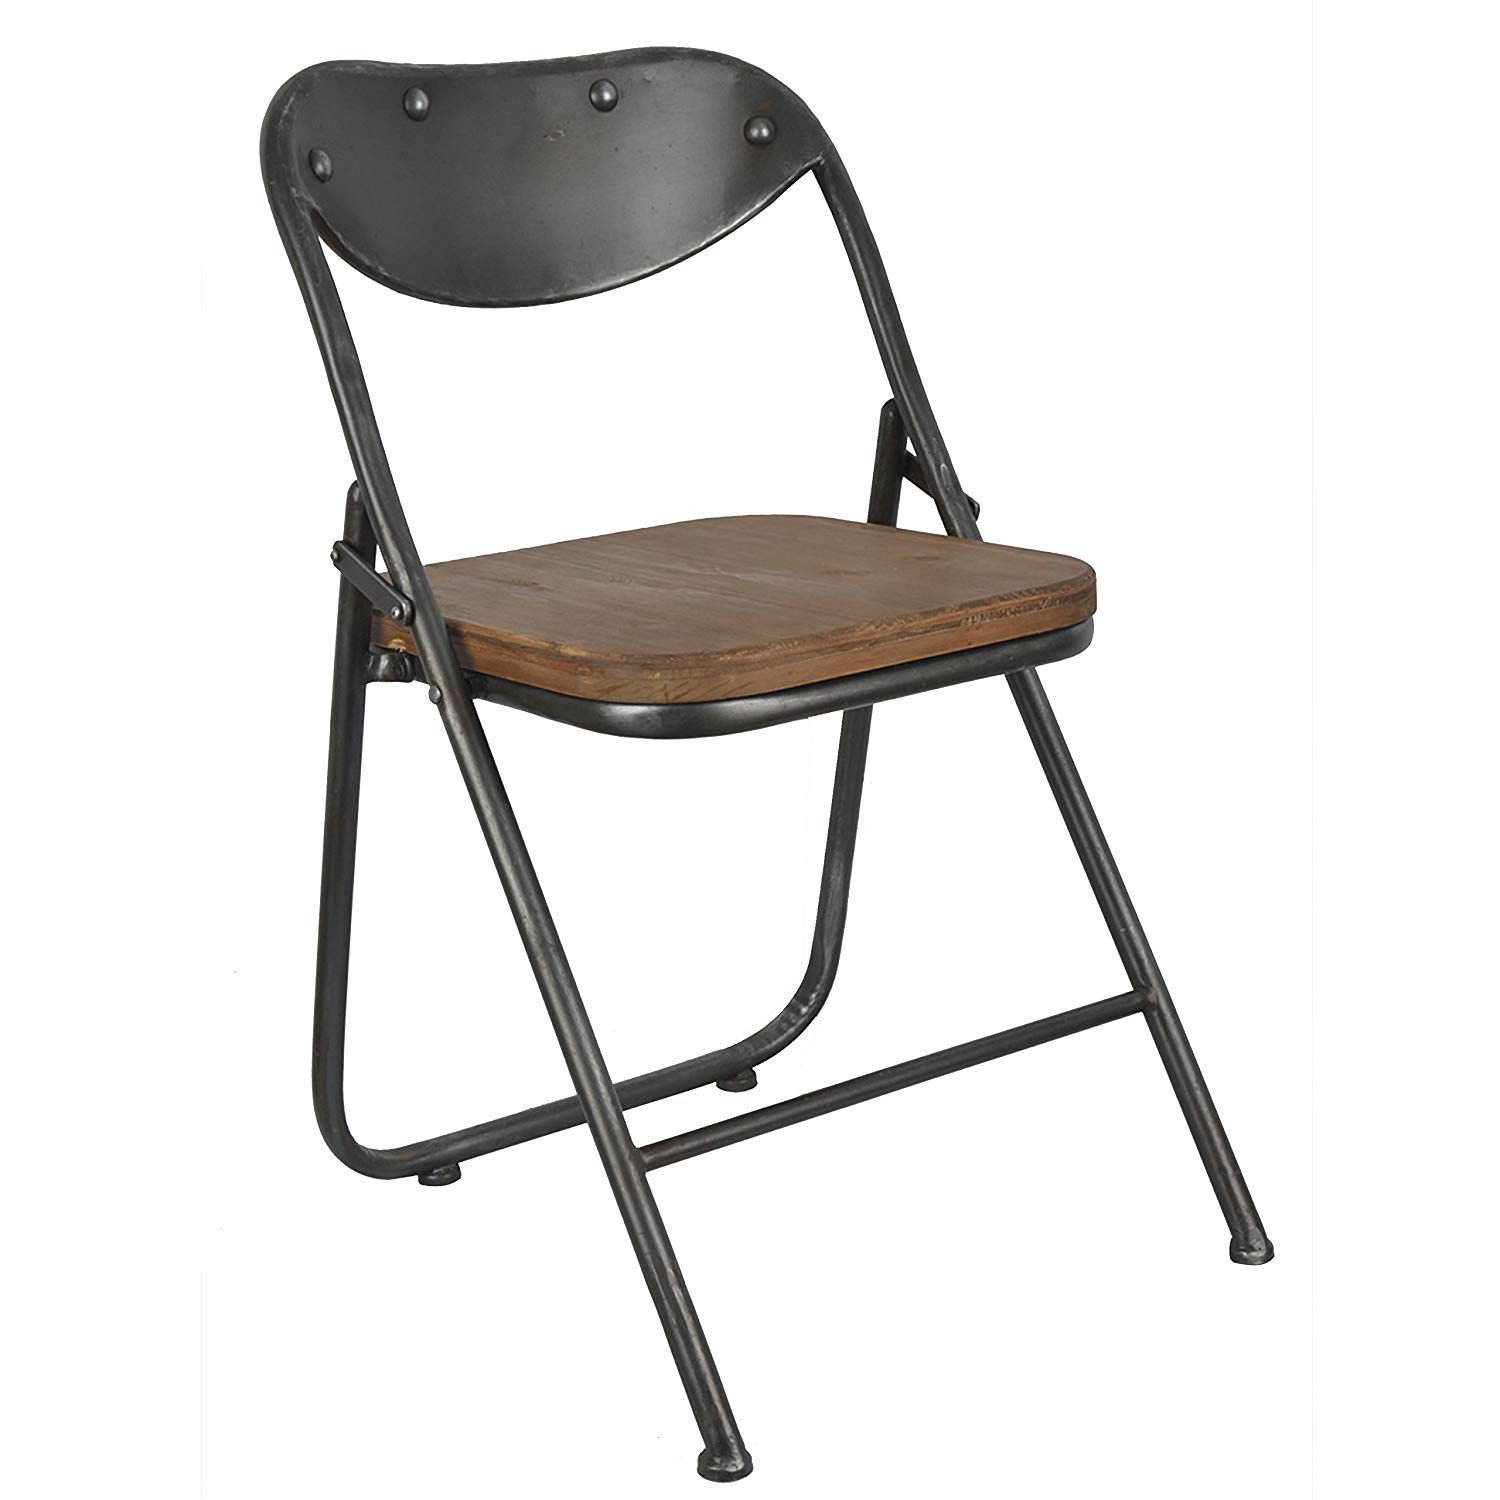 Décor Therapy Vintage Seat Folding Chairs